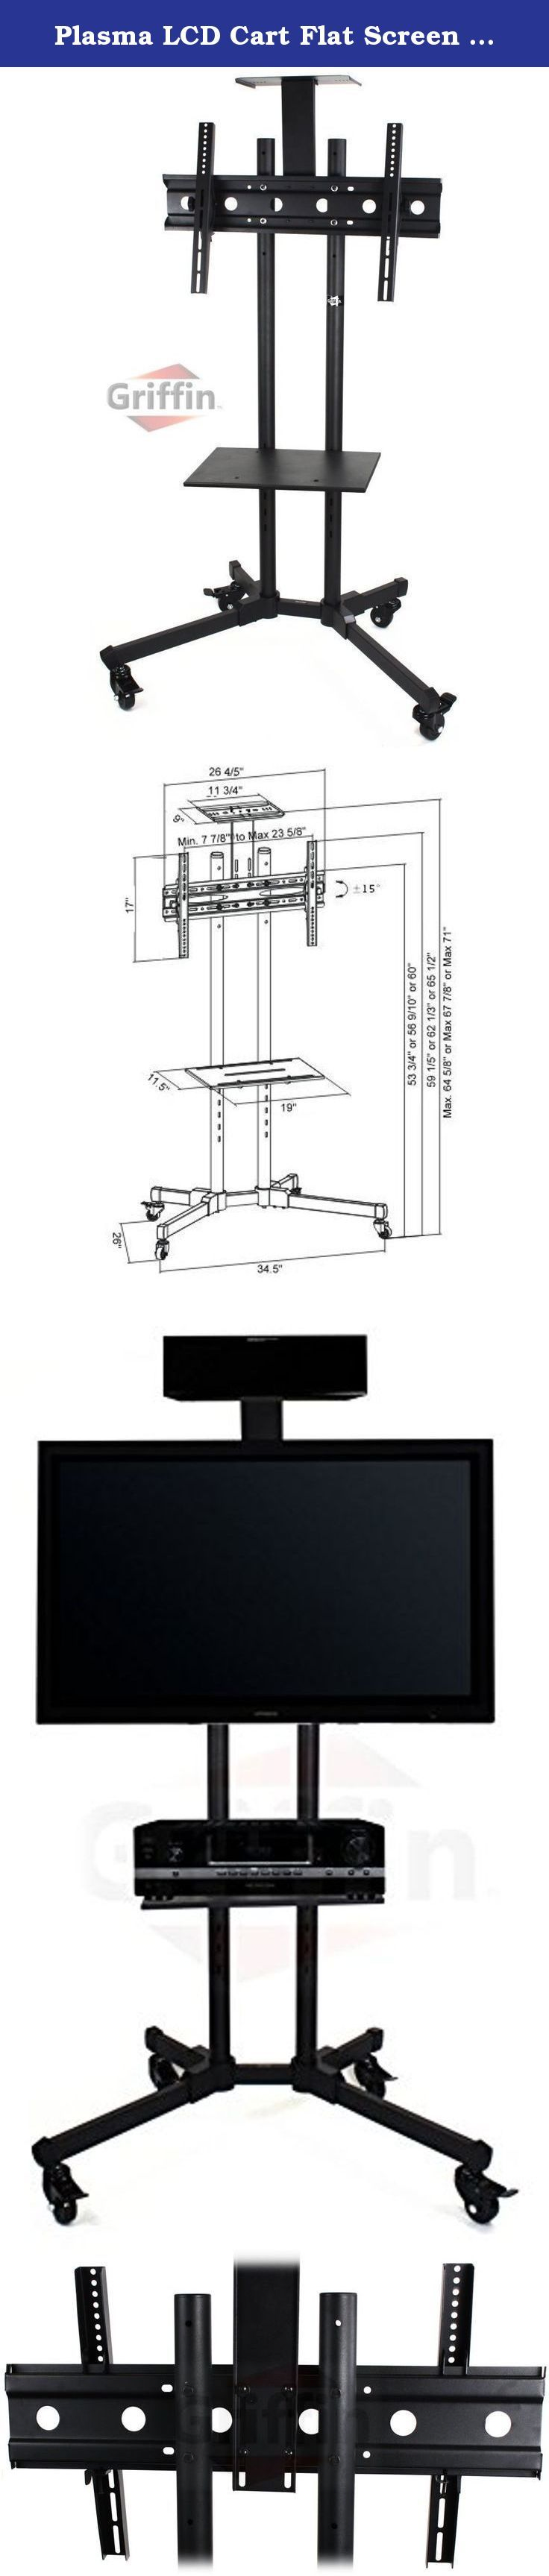 "Plasma LCD Cart Flat Screen Panel TV Stand Mount Nesting AV Mobile Wheels Caster with Shelves 70"" Griffin. Optimal for 37 inch to 70 inch flat television screens, this heavy duty sturdy rolling plasma TV stand on wheels with storage shelves is perfectly suited for the mobile display of a flat panel/LCD monitor with its welded steel tubing construction. The nesting plasma TV cart with DVD player shelf features four (4) heavy duty support legs comprised of deluxe metal and 2 inch (50mm x…"